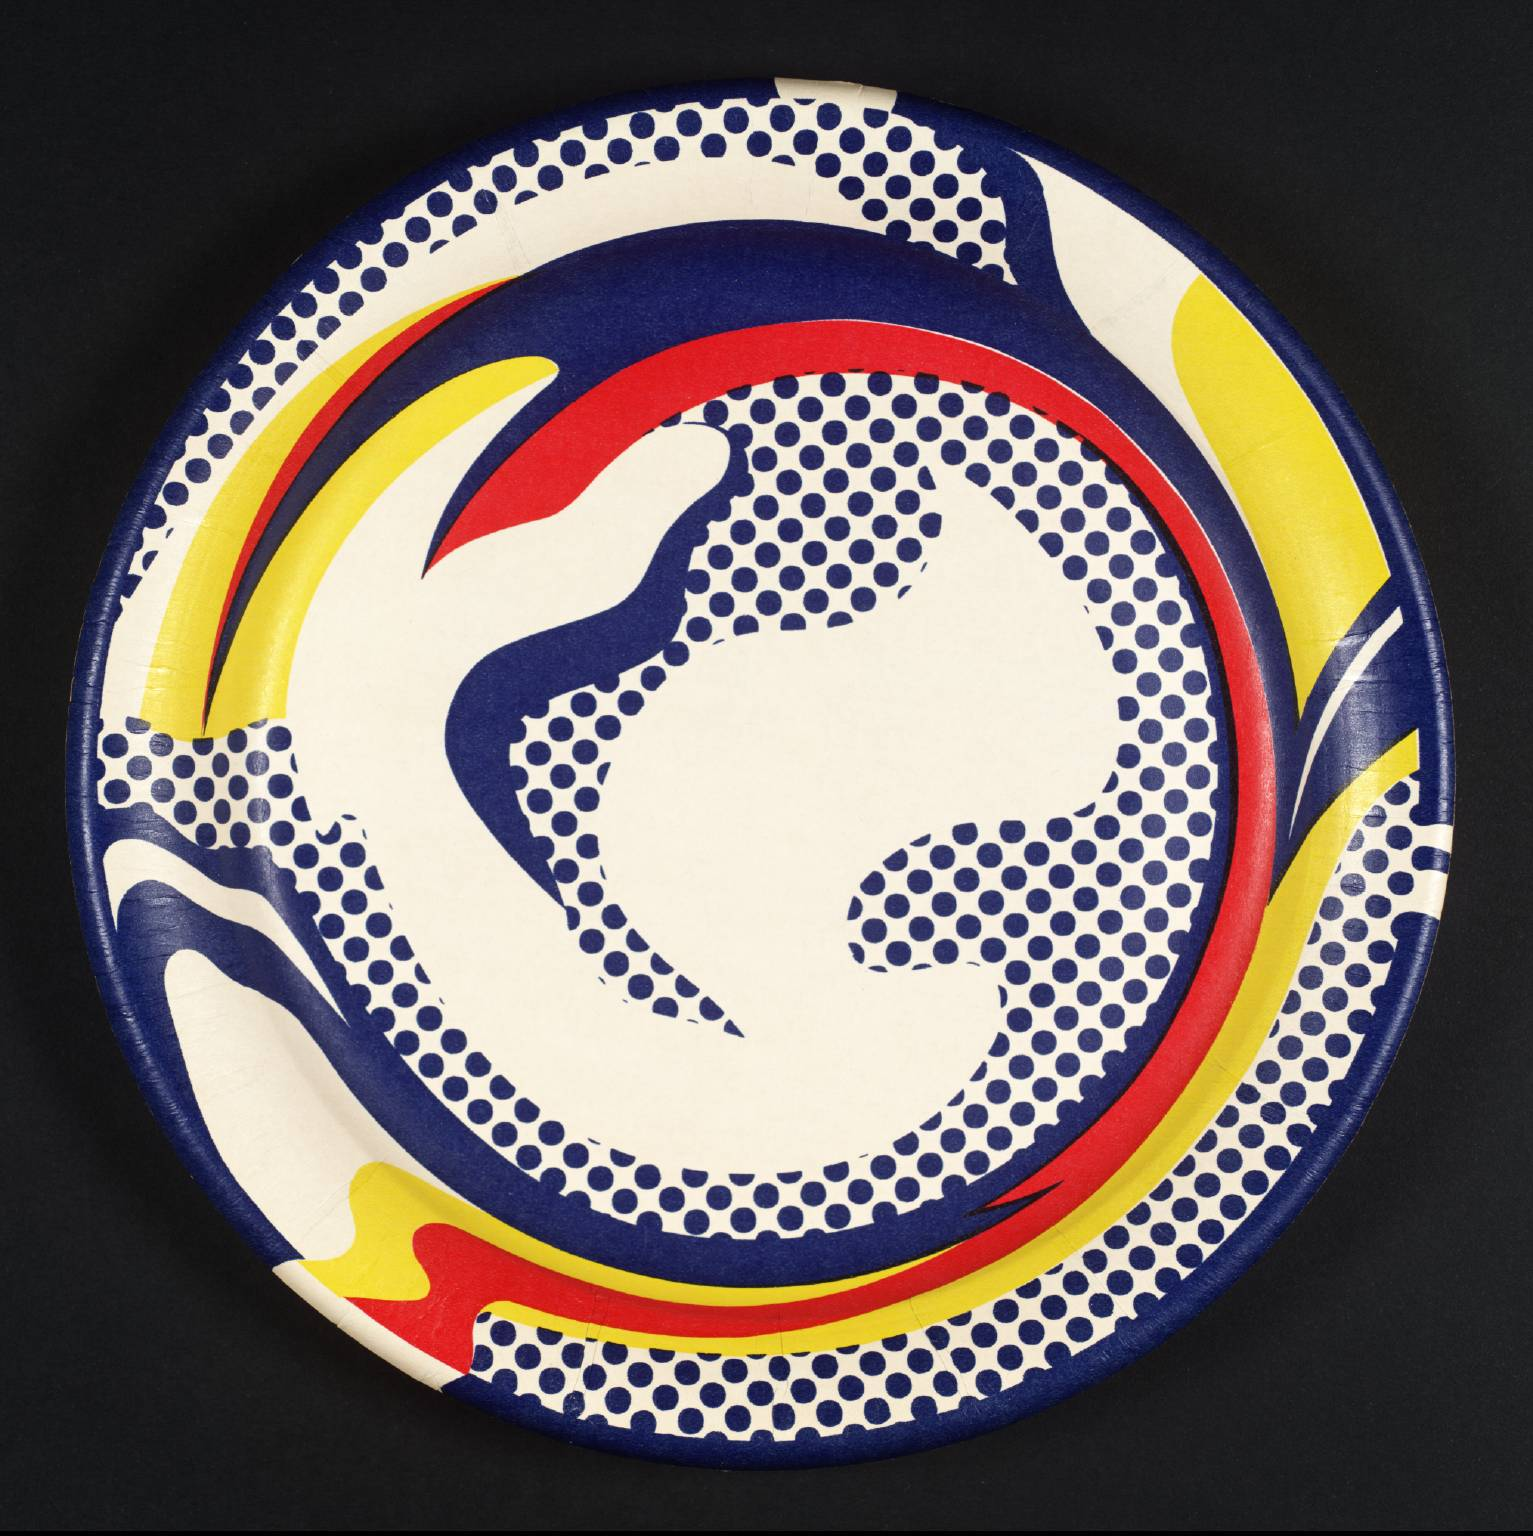 Untitled (Paper Plate) 1969 by Roy Lichtenstein 1923-1997